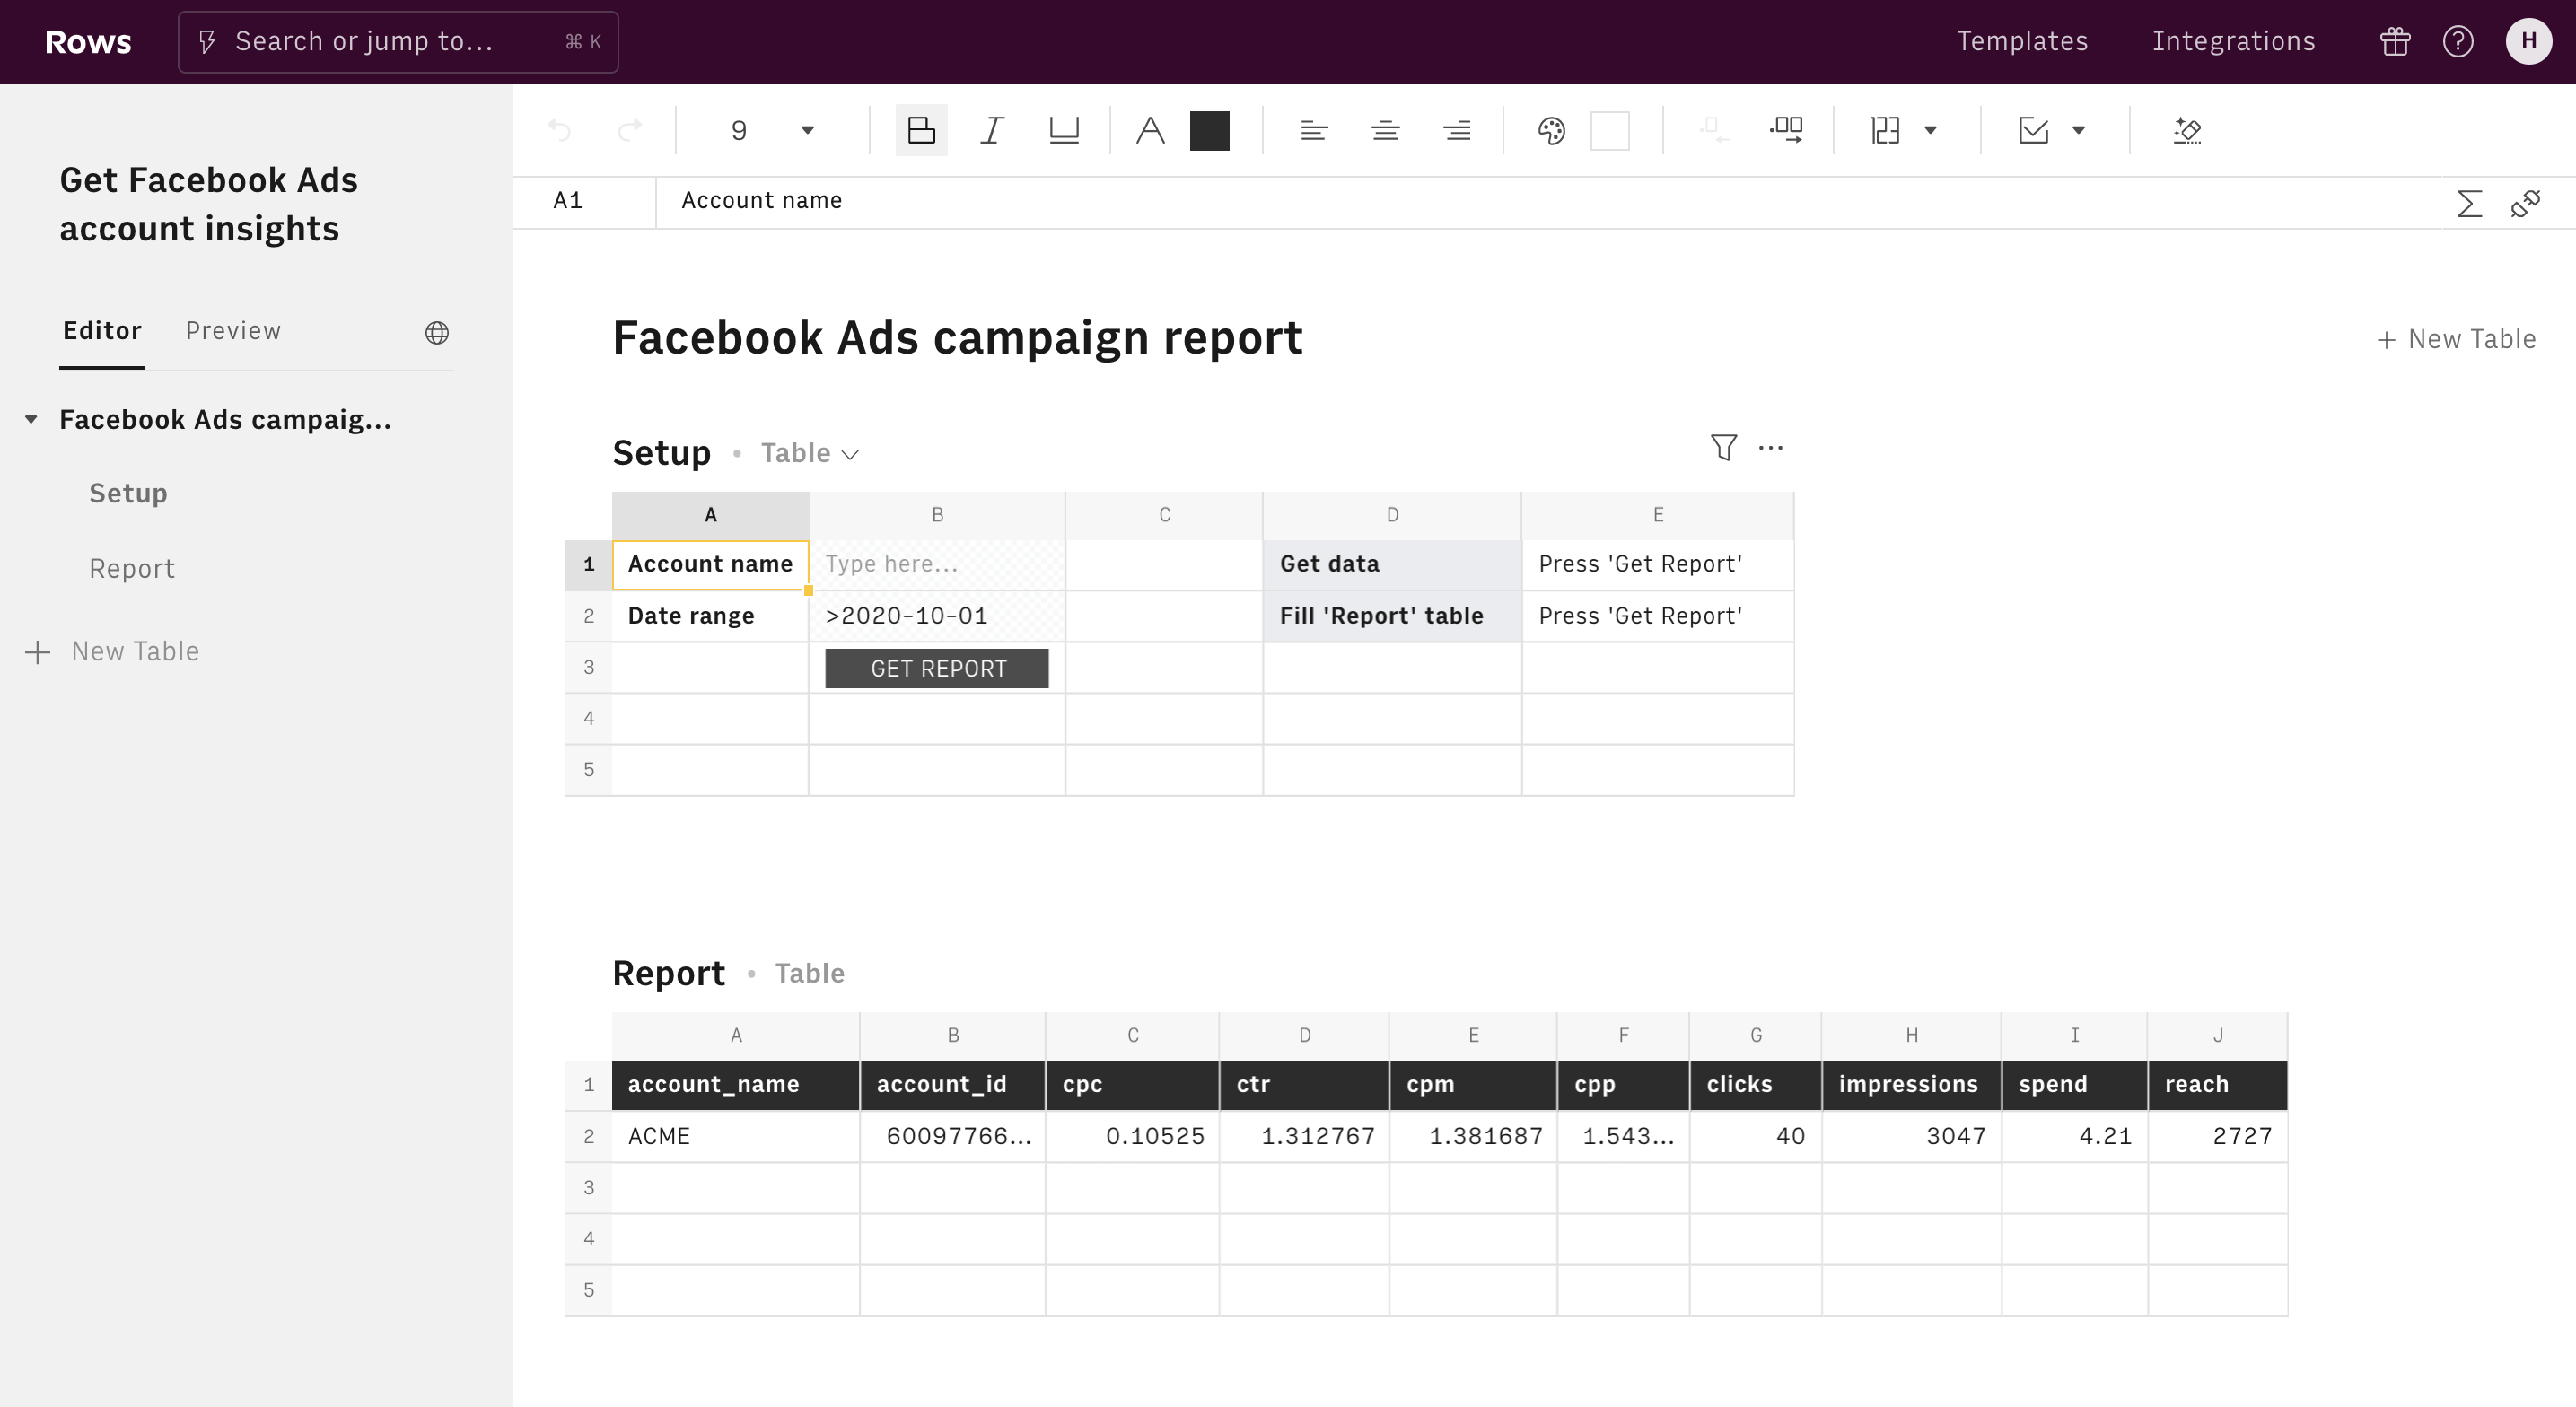 Get Facebook Ads account insights editor 1